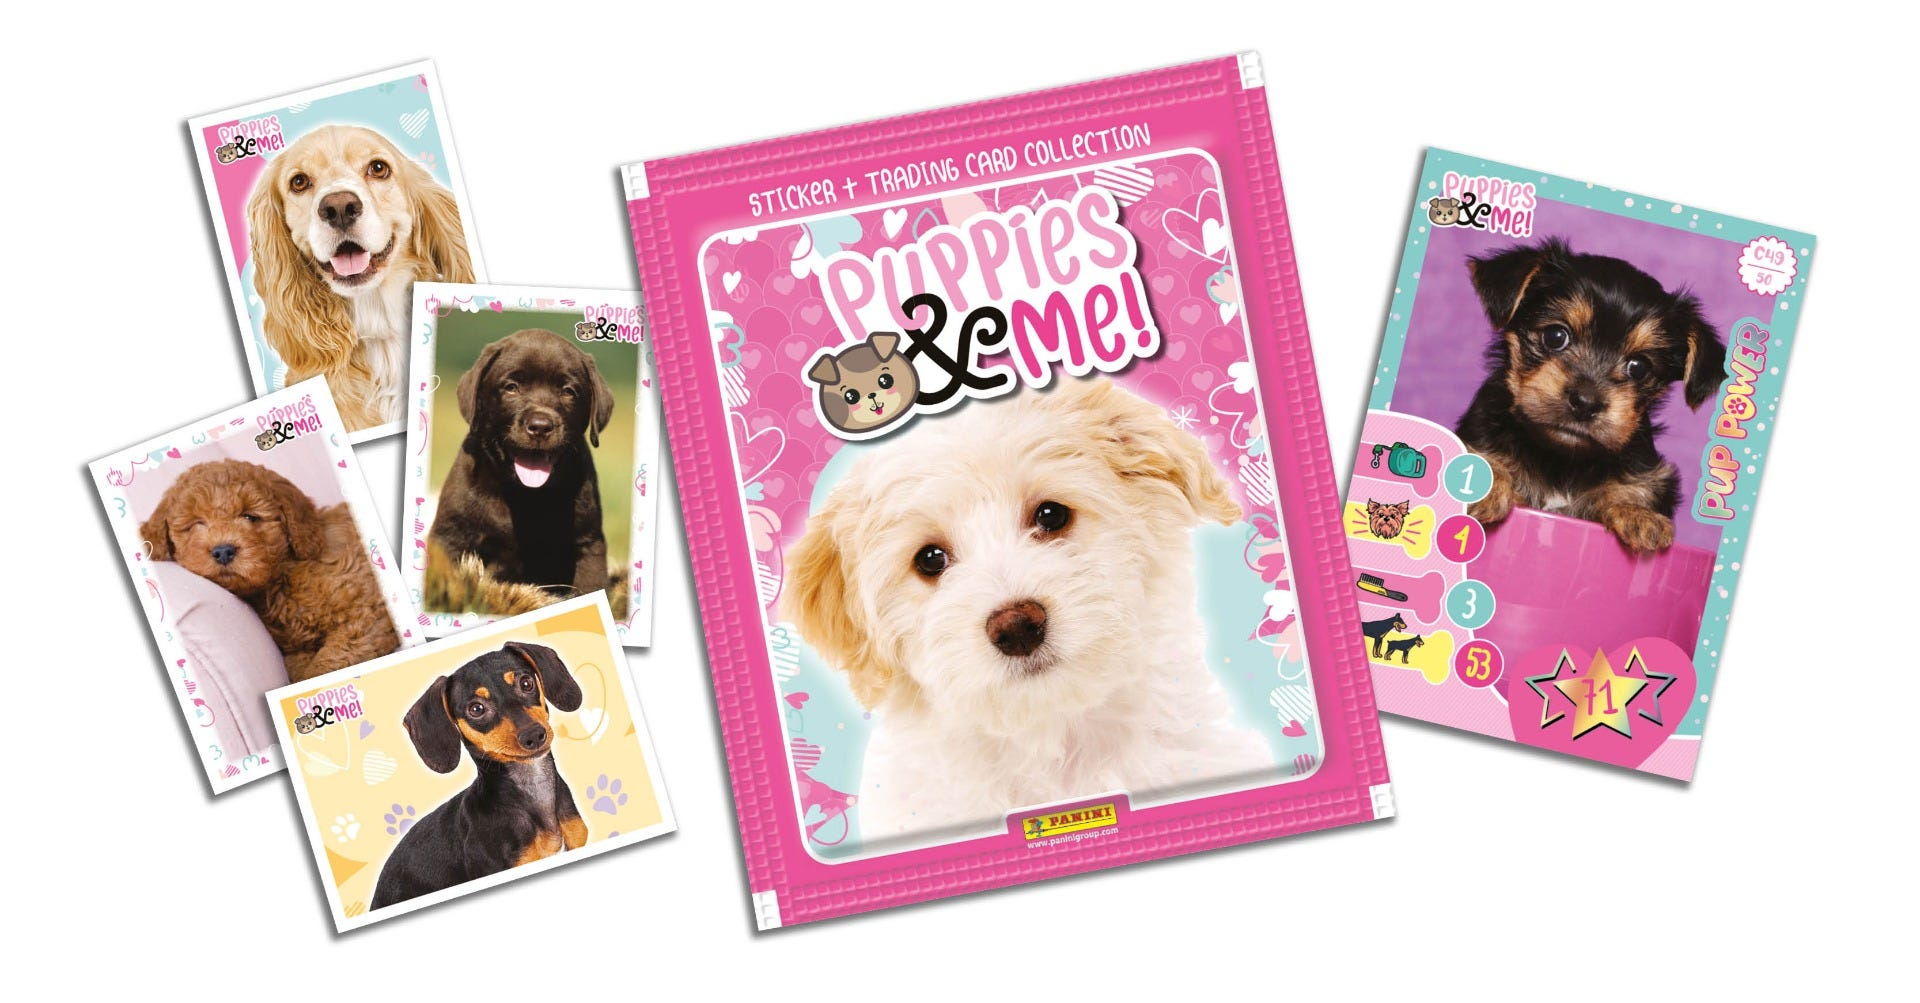 Puppies & Me Sticker Collection Panini